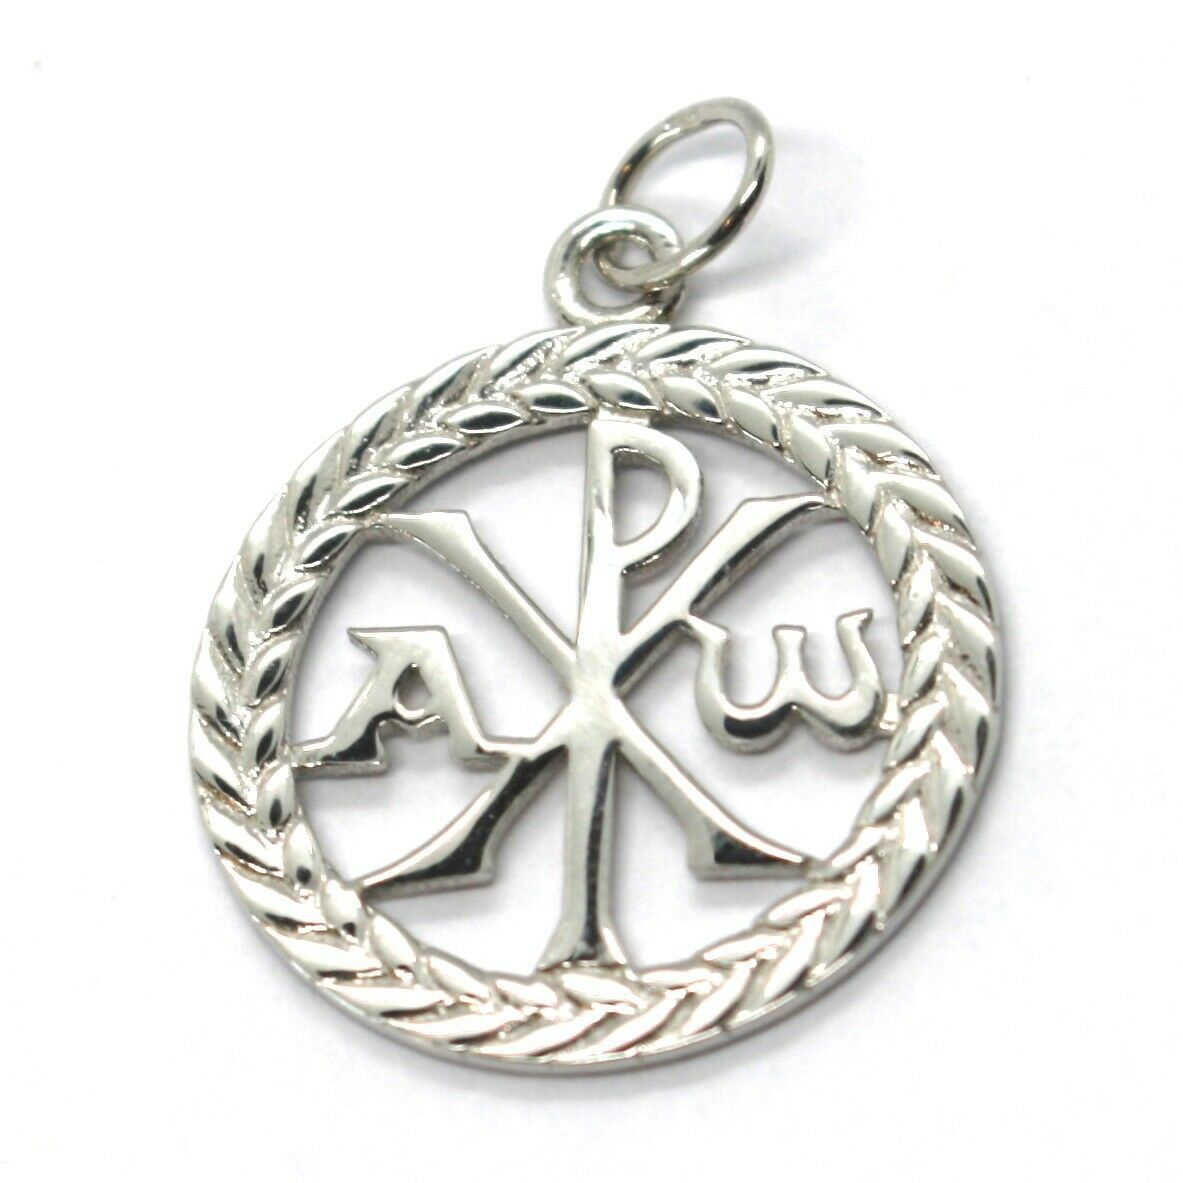 SOLID 18K WHITE GOLD MONOGRAM OF CHRIST PENDANT, PEACE, MEDAL, 0.8 INCHES